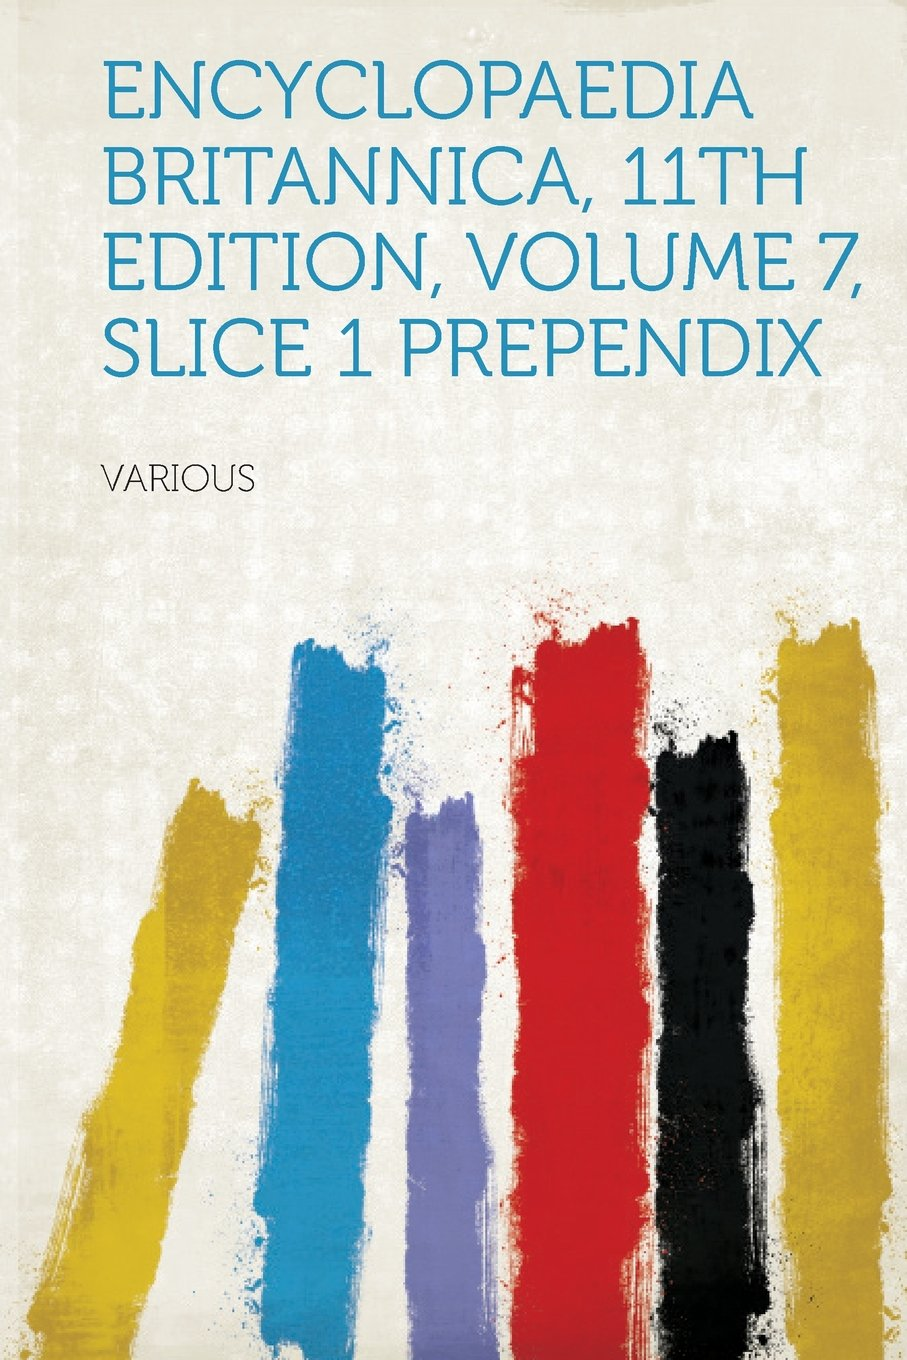 Encyclopaedia Britannica, 11th Edition, Volume 7, Slice 1 Prependix:  Various: 9781318929603: Amazon.com: Books